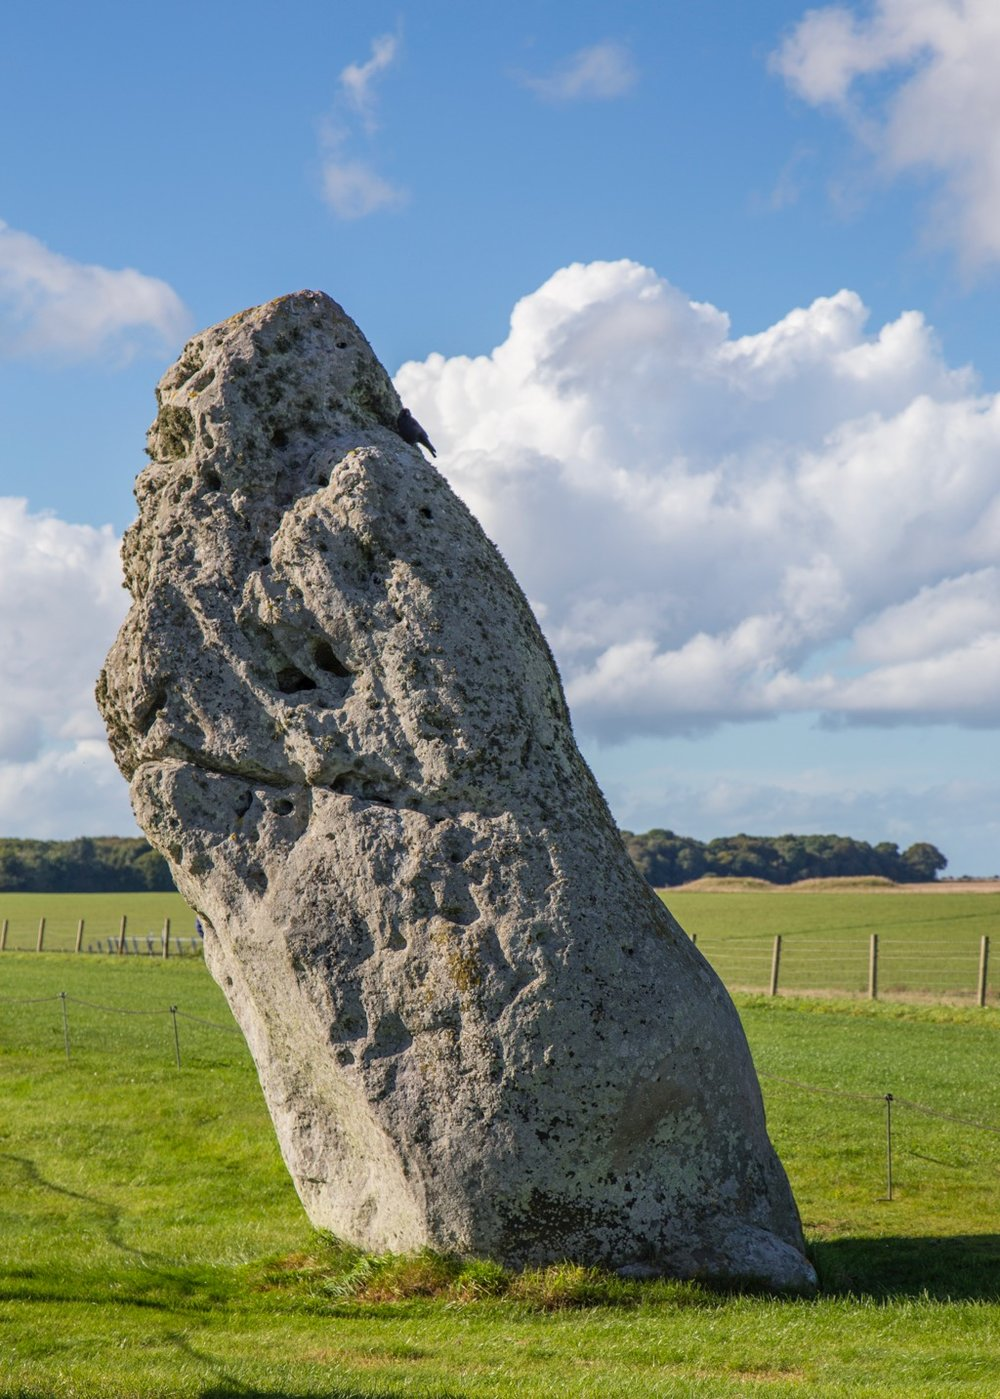 The Heel Stone is a single large block of sarsen stone standing within the Avenue outside the entrance of the Stonehenge earthwork, close to the main road.